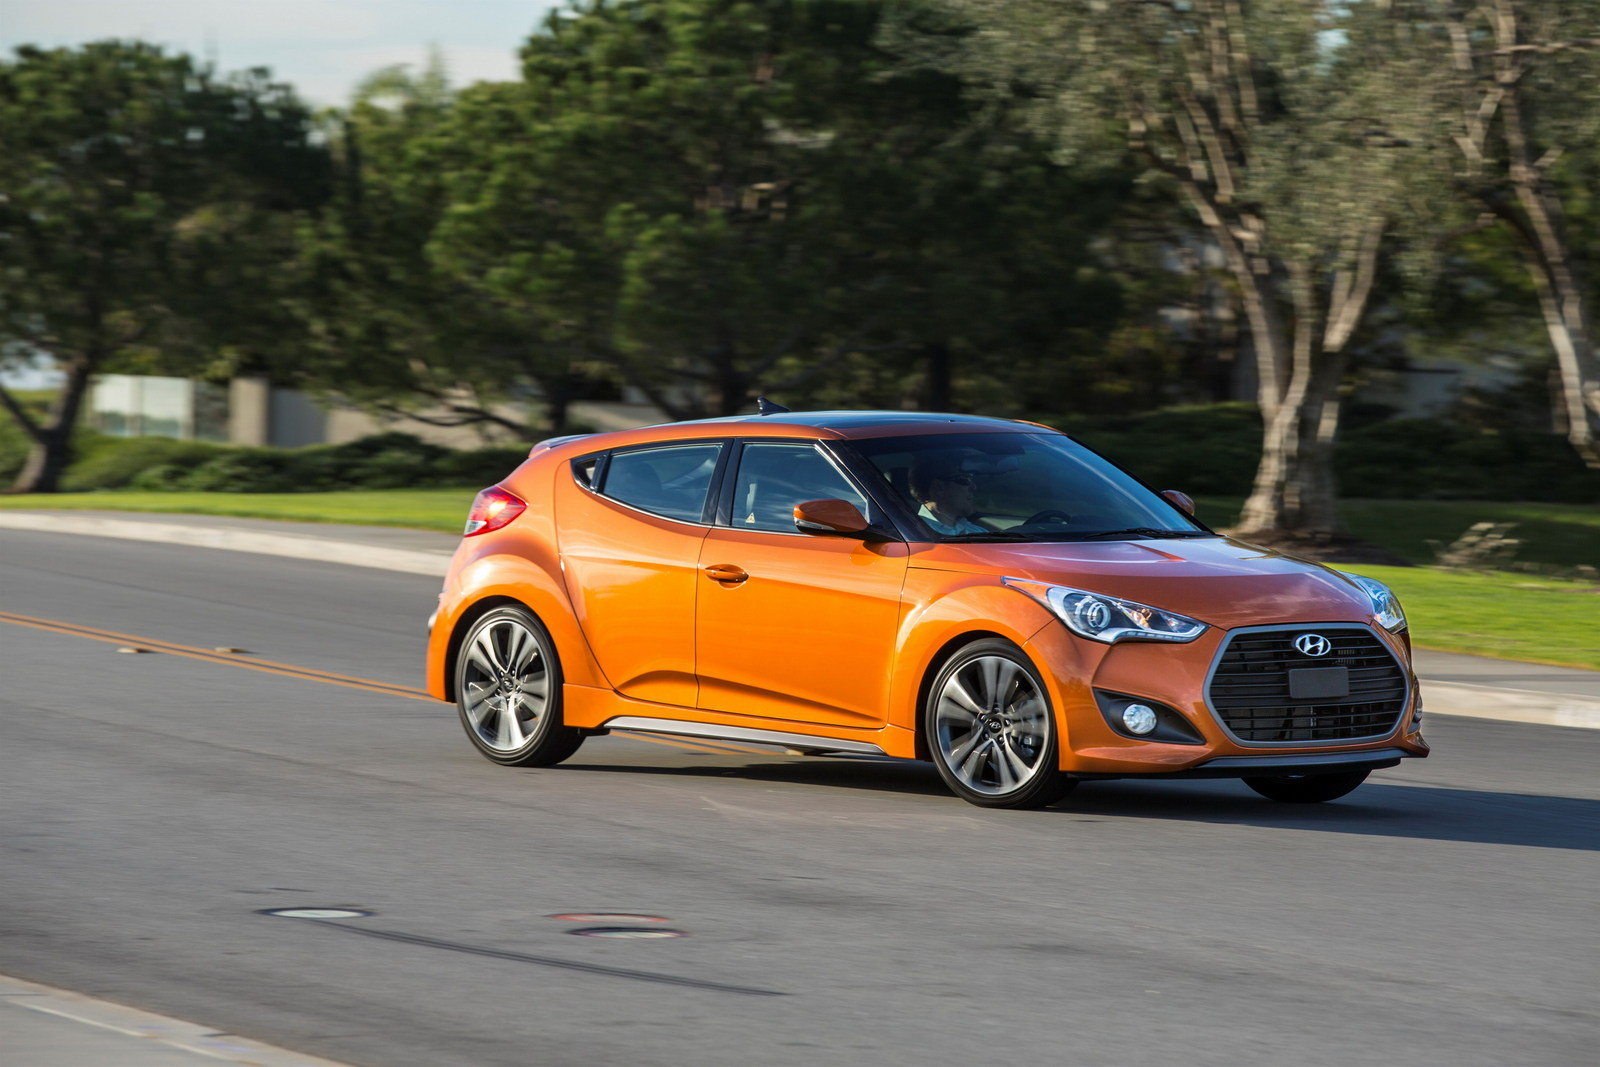 2016 hyundai veloster turbo picture 617100 car review top speed. Black Bedroom Furniture Sets. Home Design Ideas